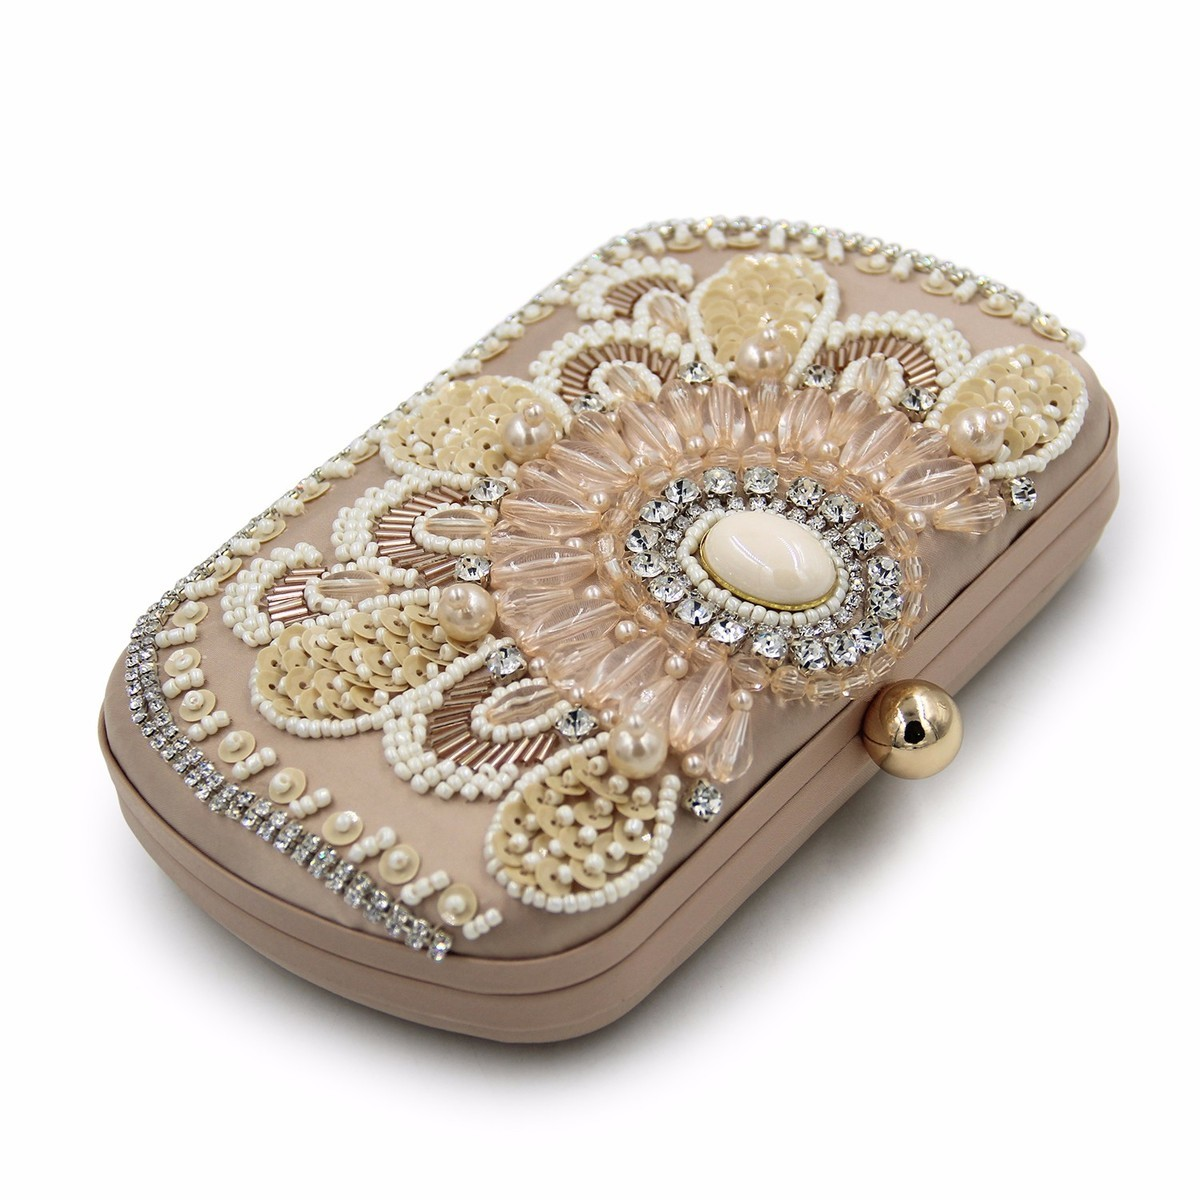 5069487a35 Mystic River New Brand Women Clutch Bag Ladies Day Clutches Meeting Wedding  Purse Party Bags Good Quality-in Clutches from Luggage & Bags on  Aliexpress.com ...